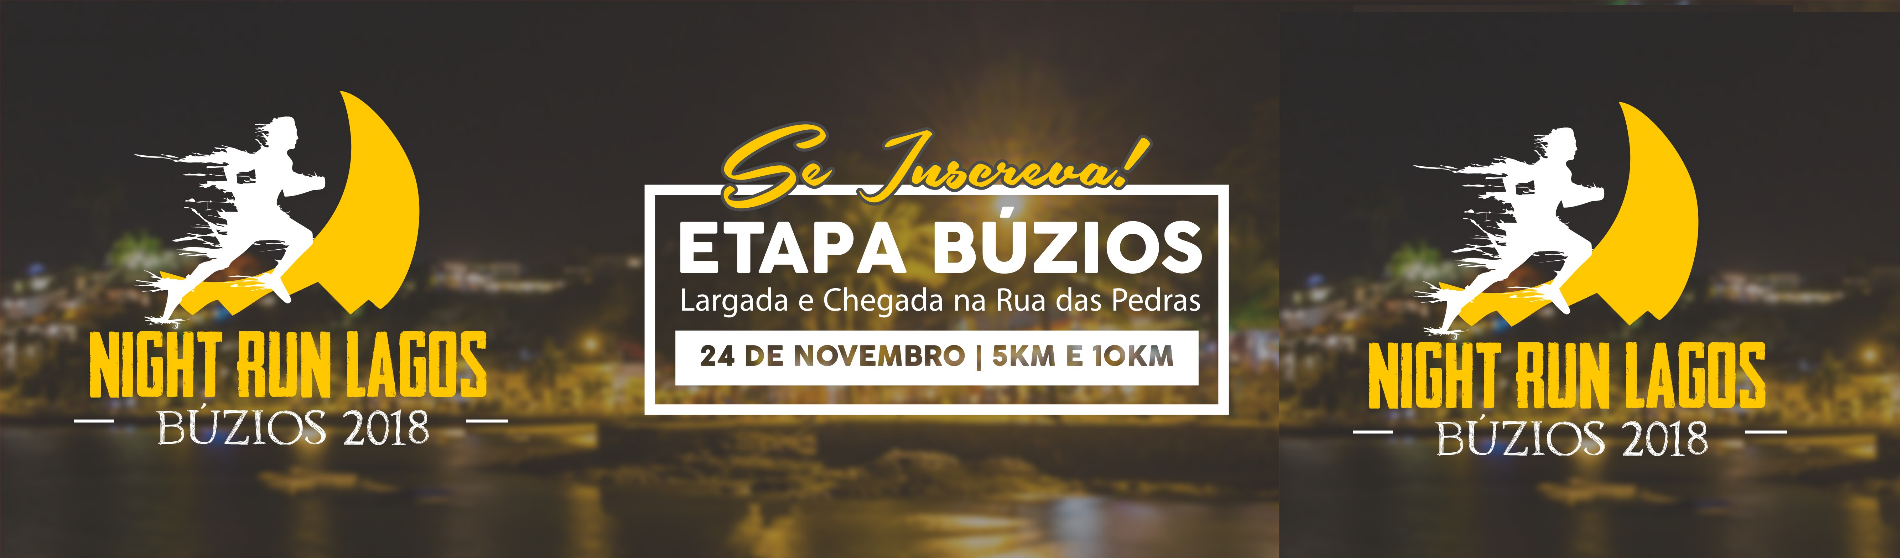 CIRCUITO NIGHT RUN LAGOS - ETAPA BÚZIOS 2018